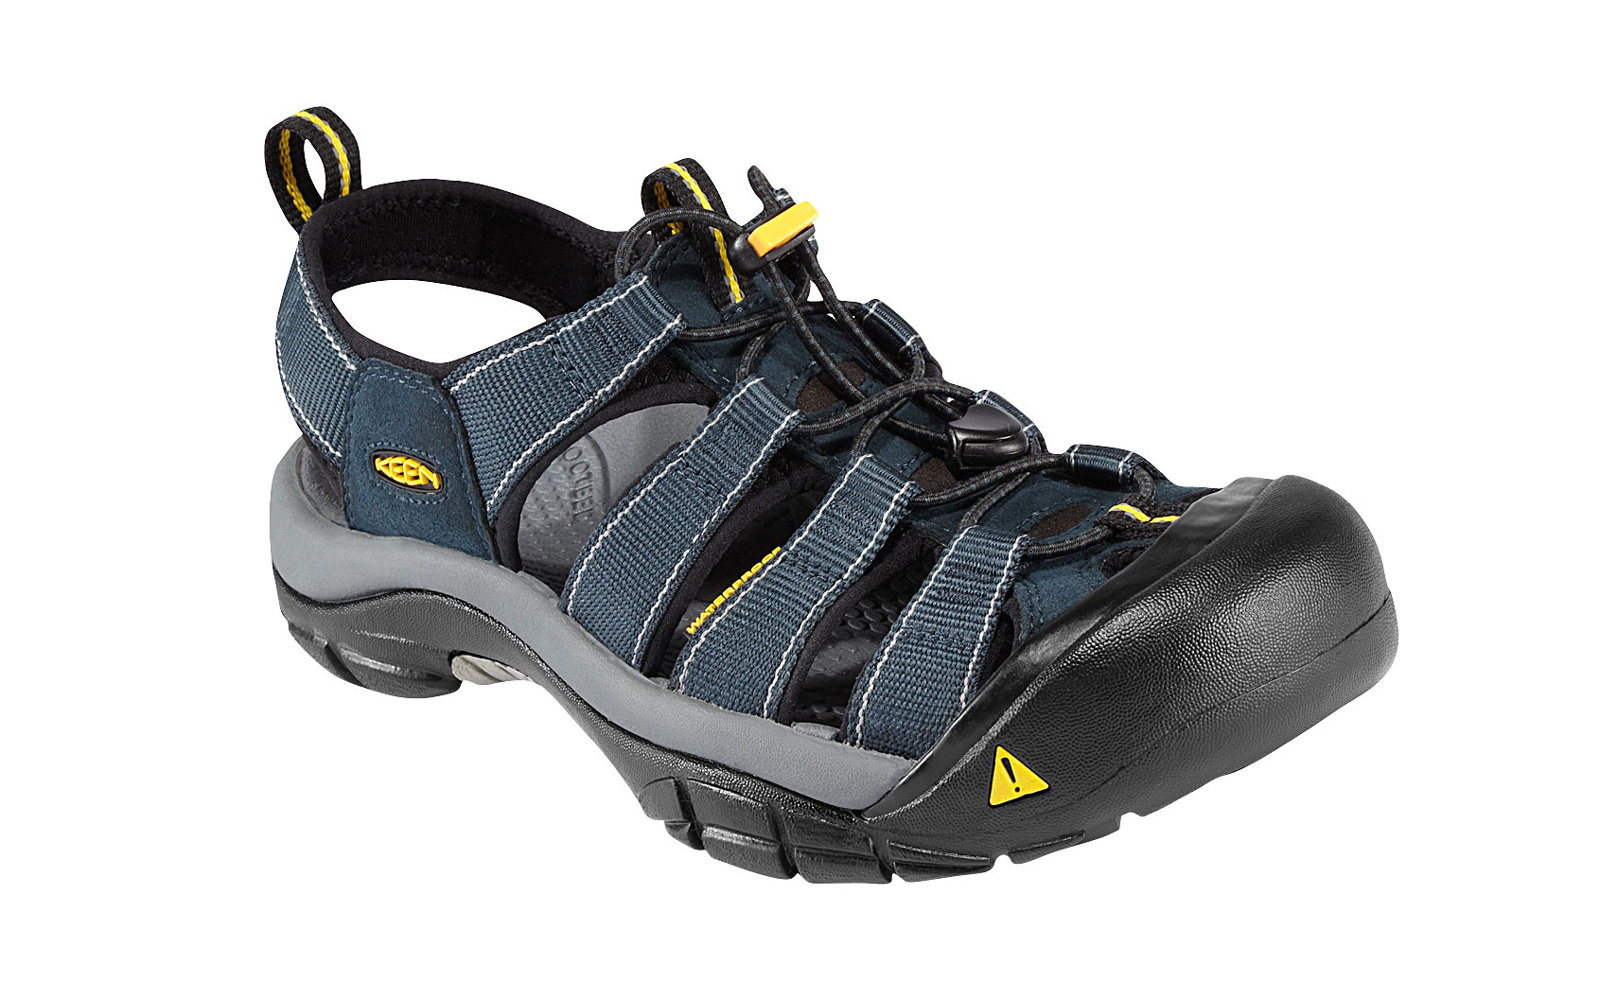 89d265b890 Best Hiking Sandals for Men | Travel + Leisure